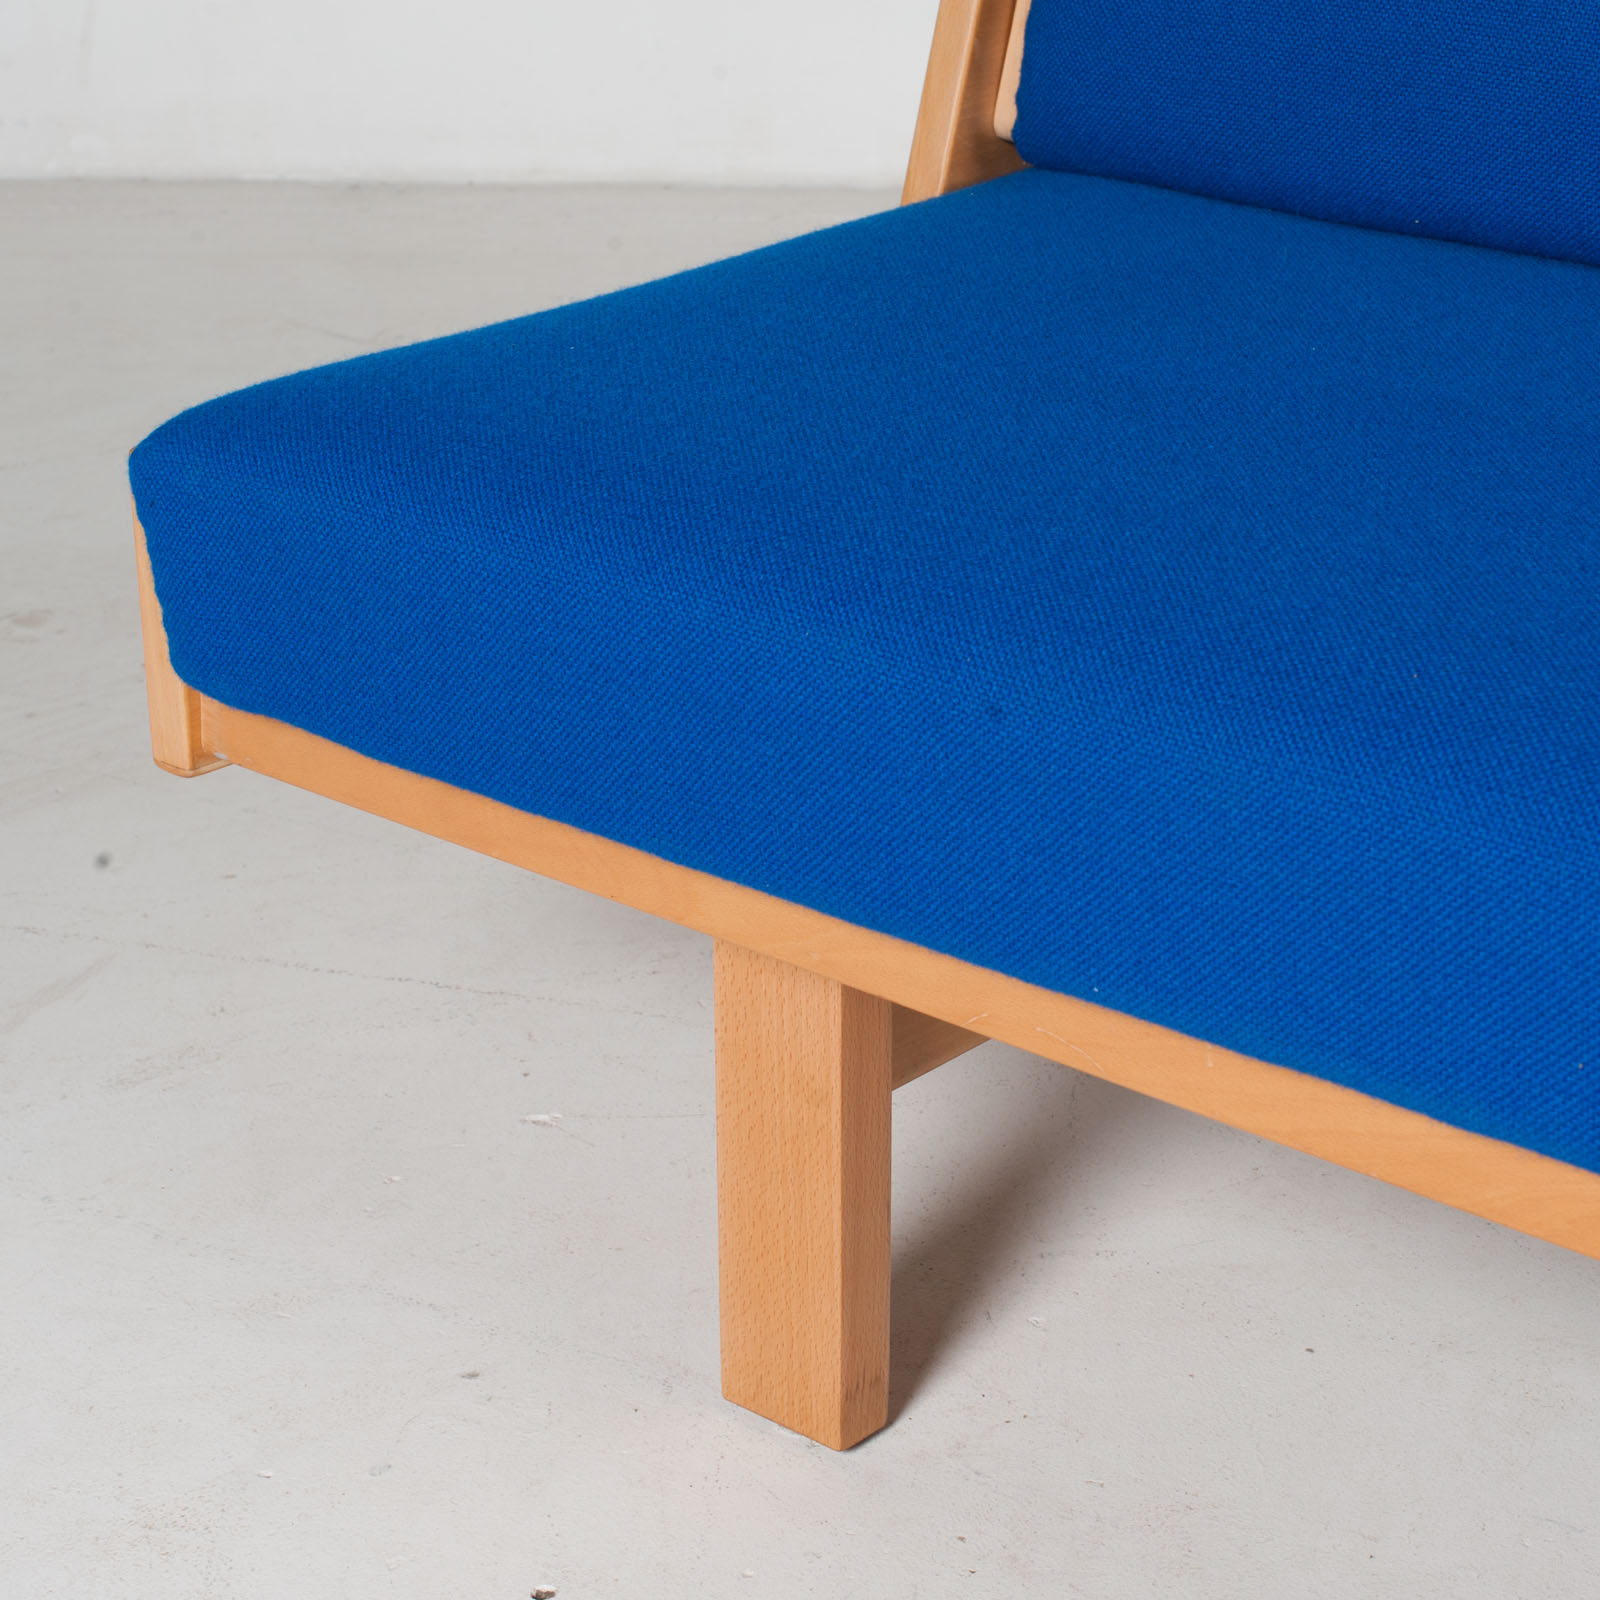 Ge 258 Daybed By Hans J. Wegner In Beech With Original Blue Upholstery For Getama, 1960s, Denmark11